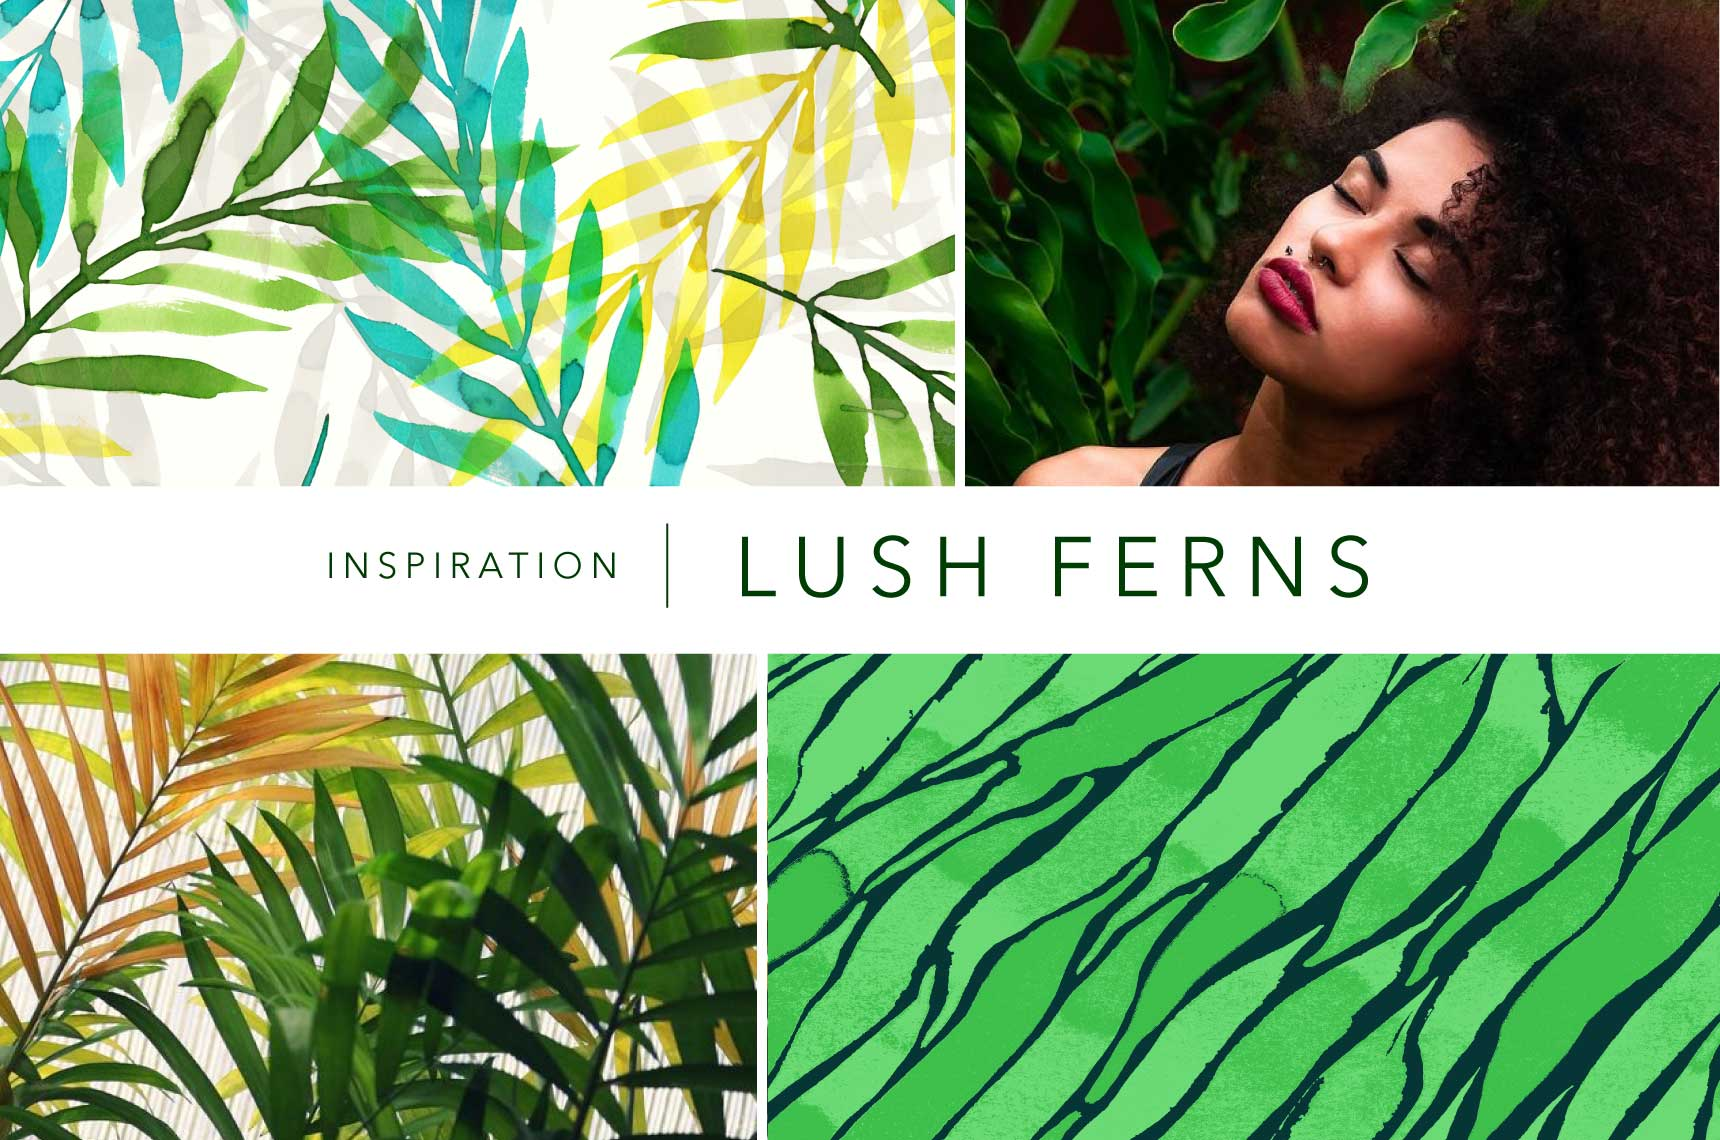 Prints featured - Top left: Layered Ferns. Bottom right: Water Waves.  Inspiration images via Pixabay.